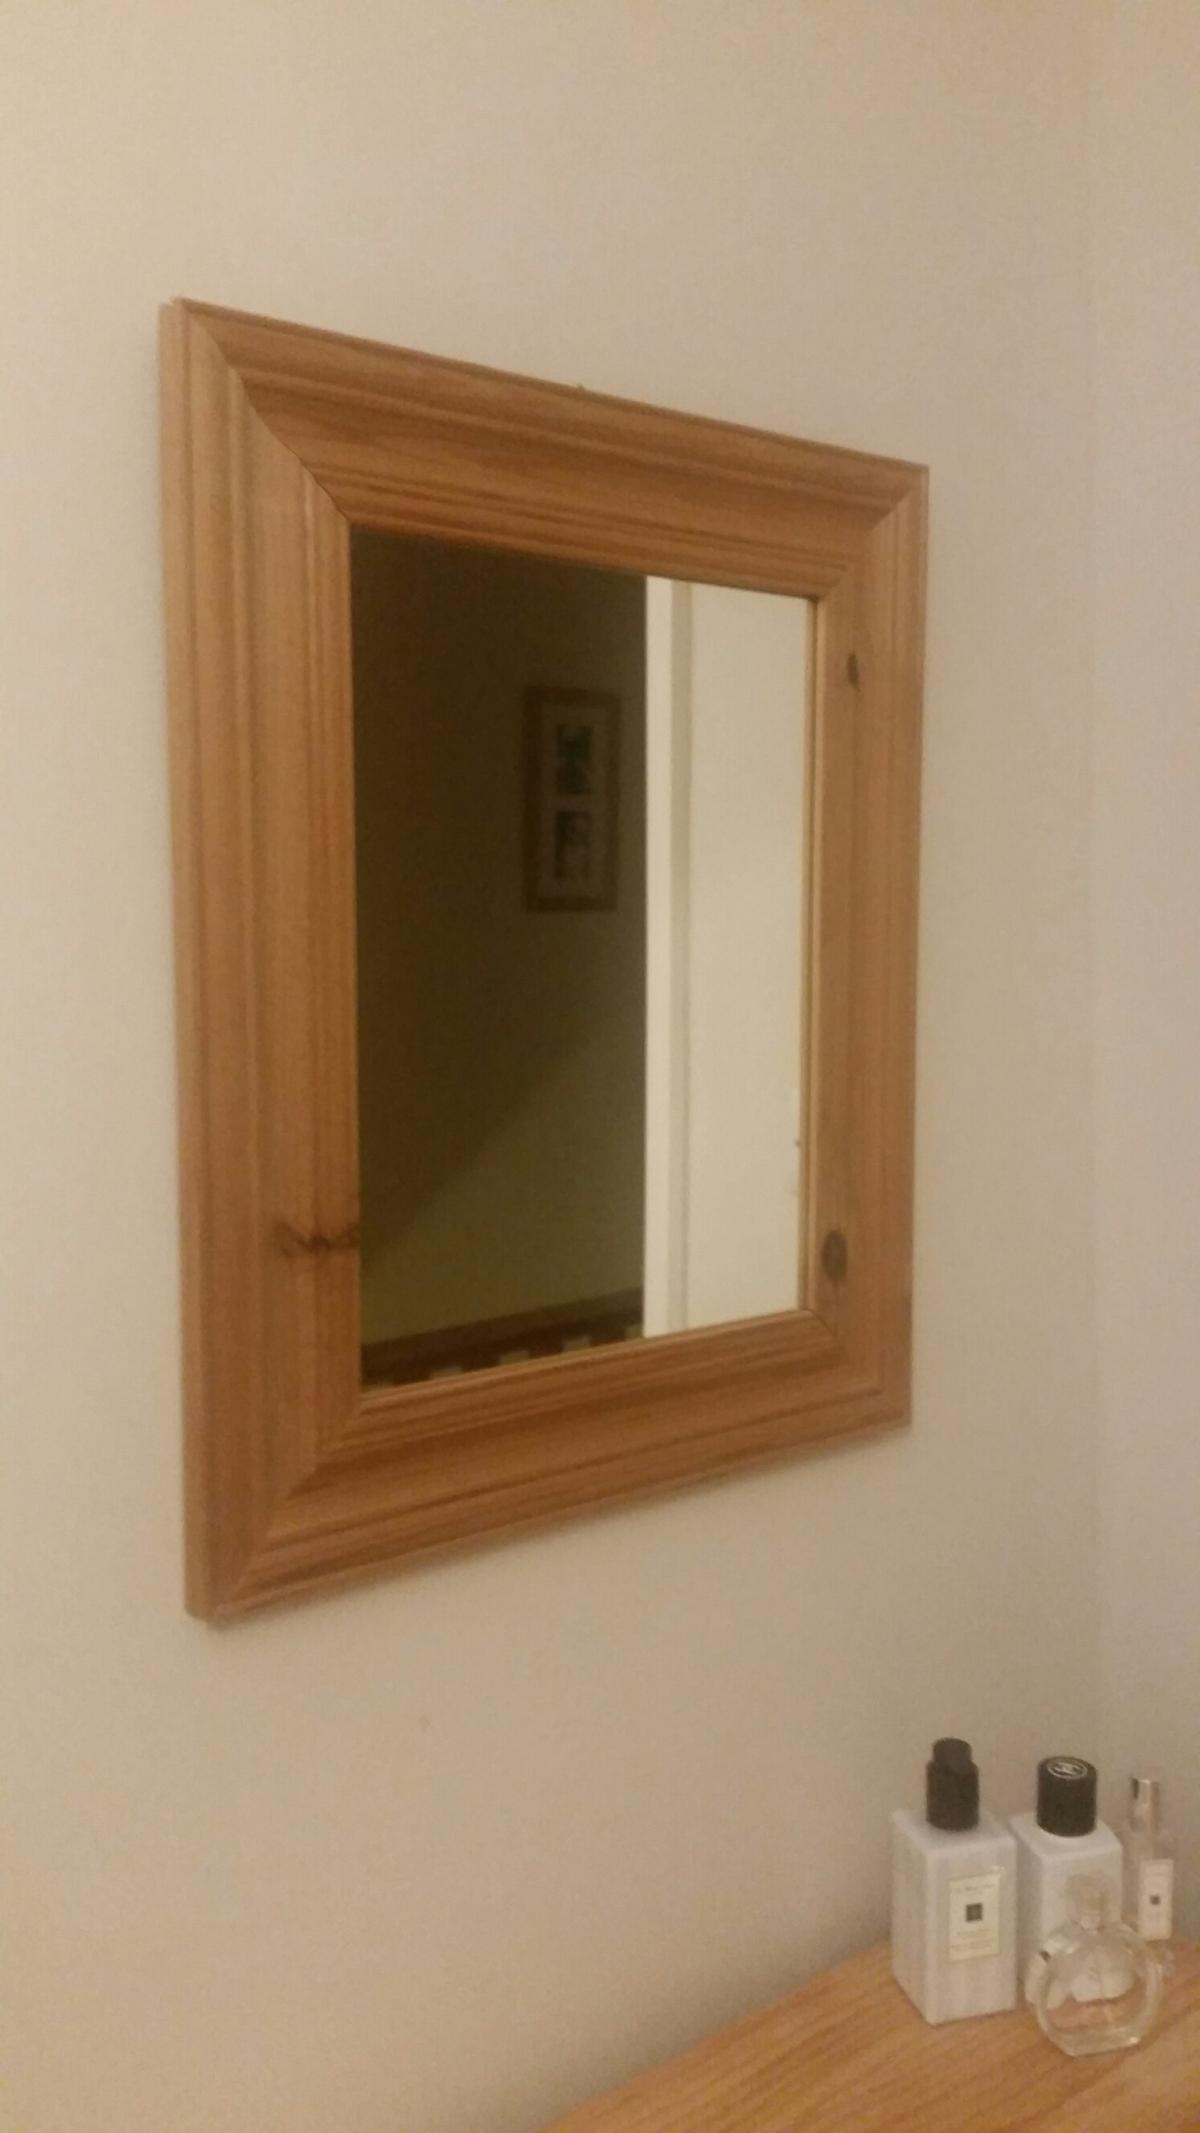 Small Wooden Framed Mirror